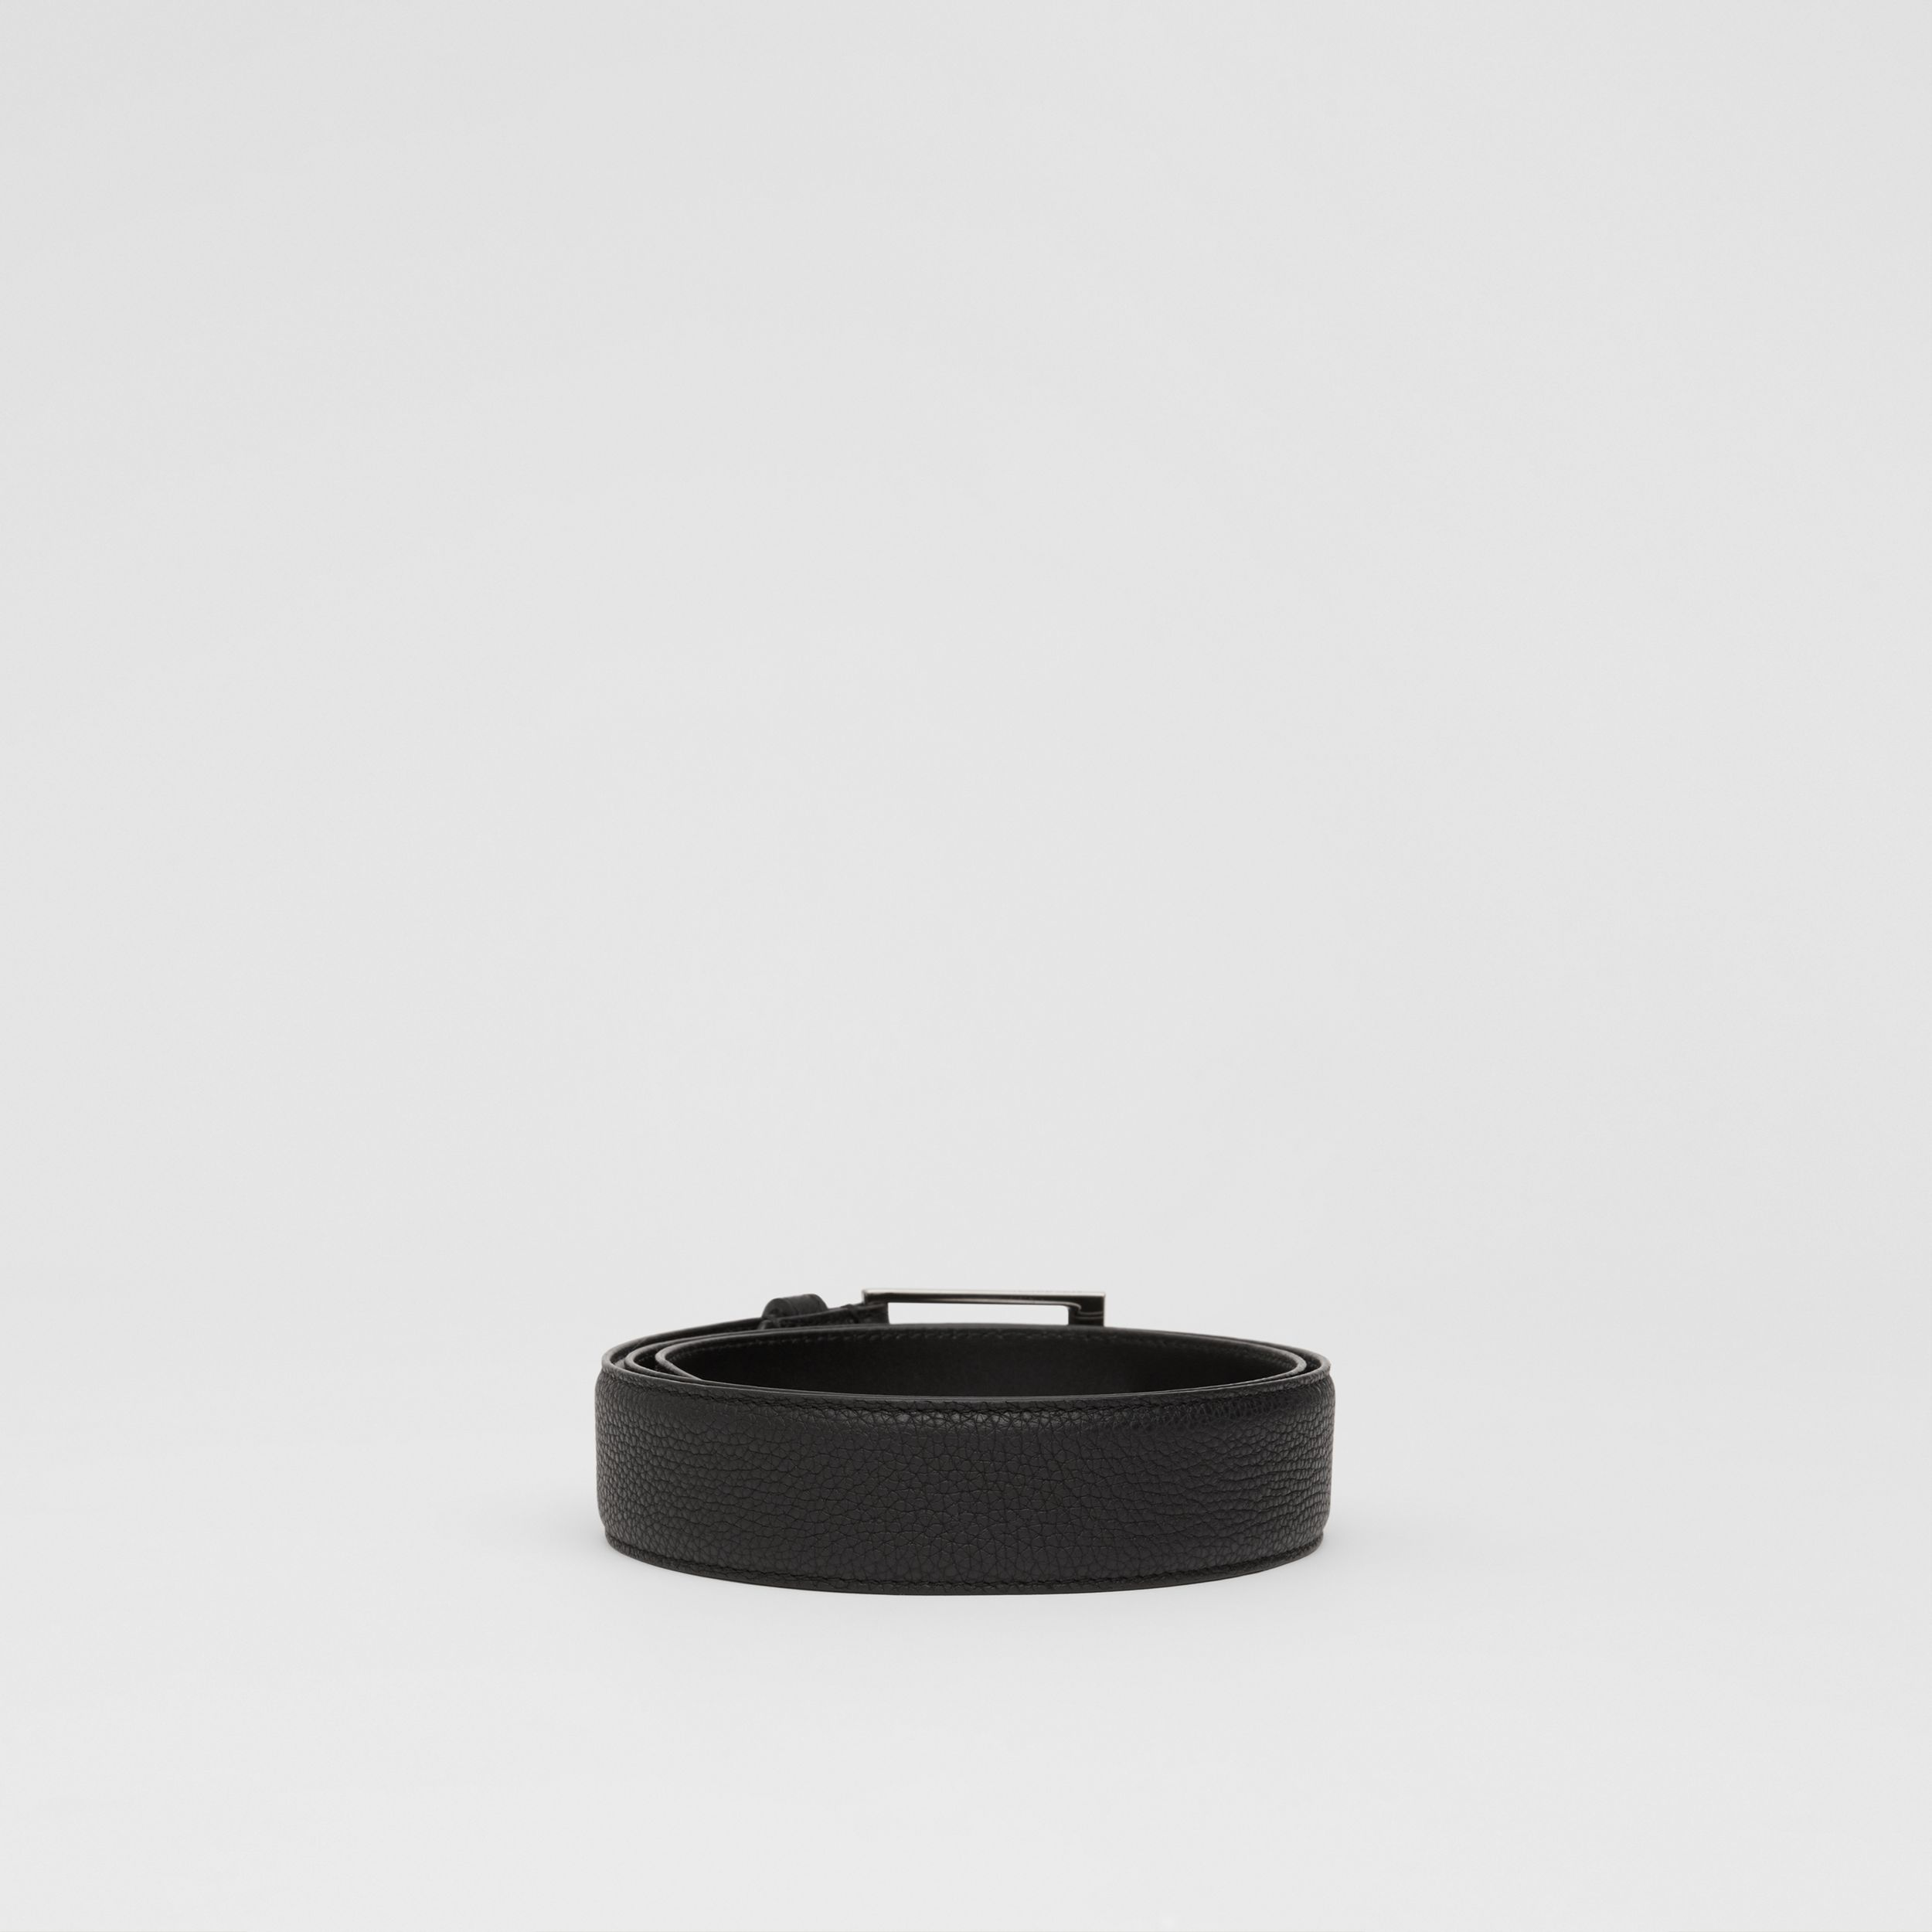 Grainy Leather Belt in Black - Men | Burberry Singapore - 4